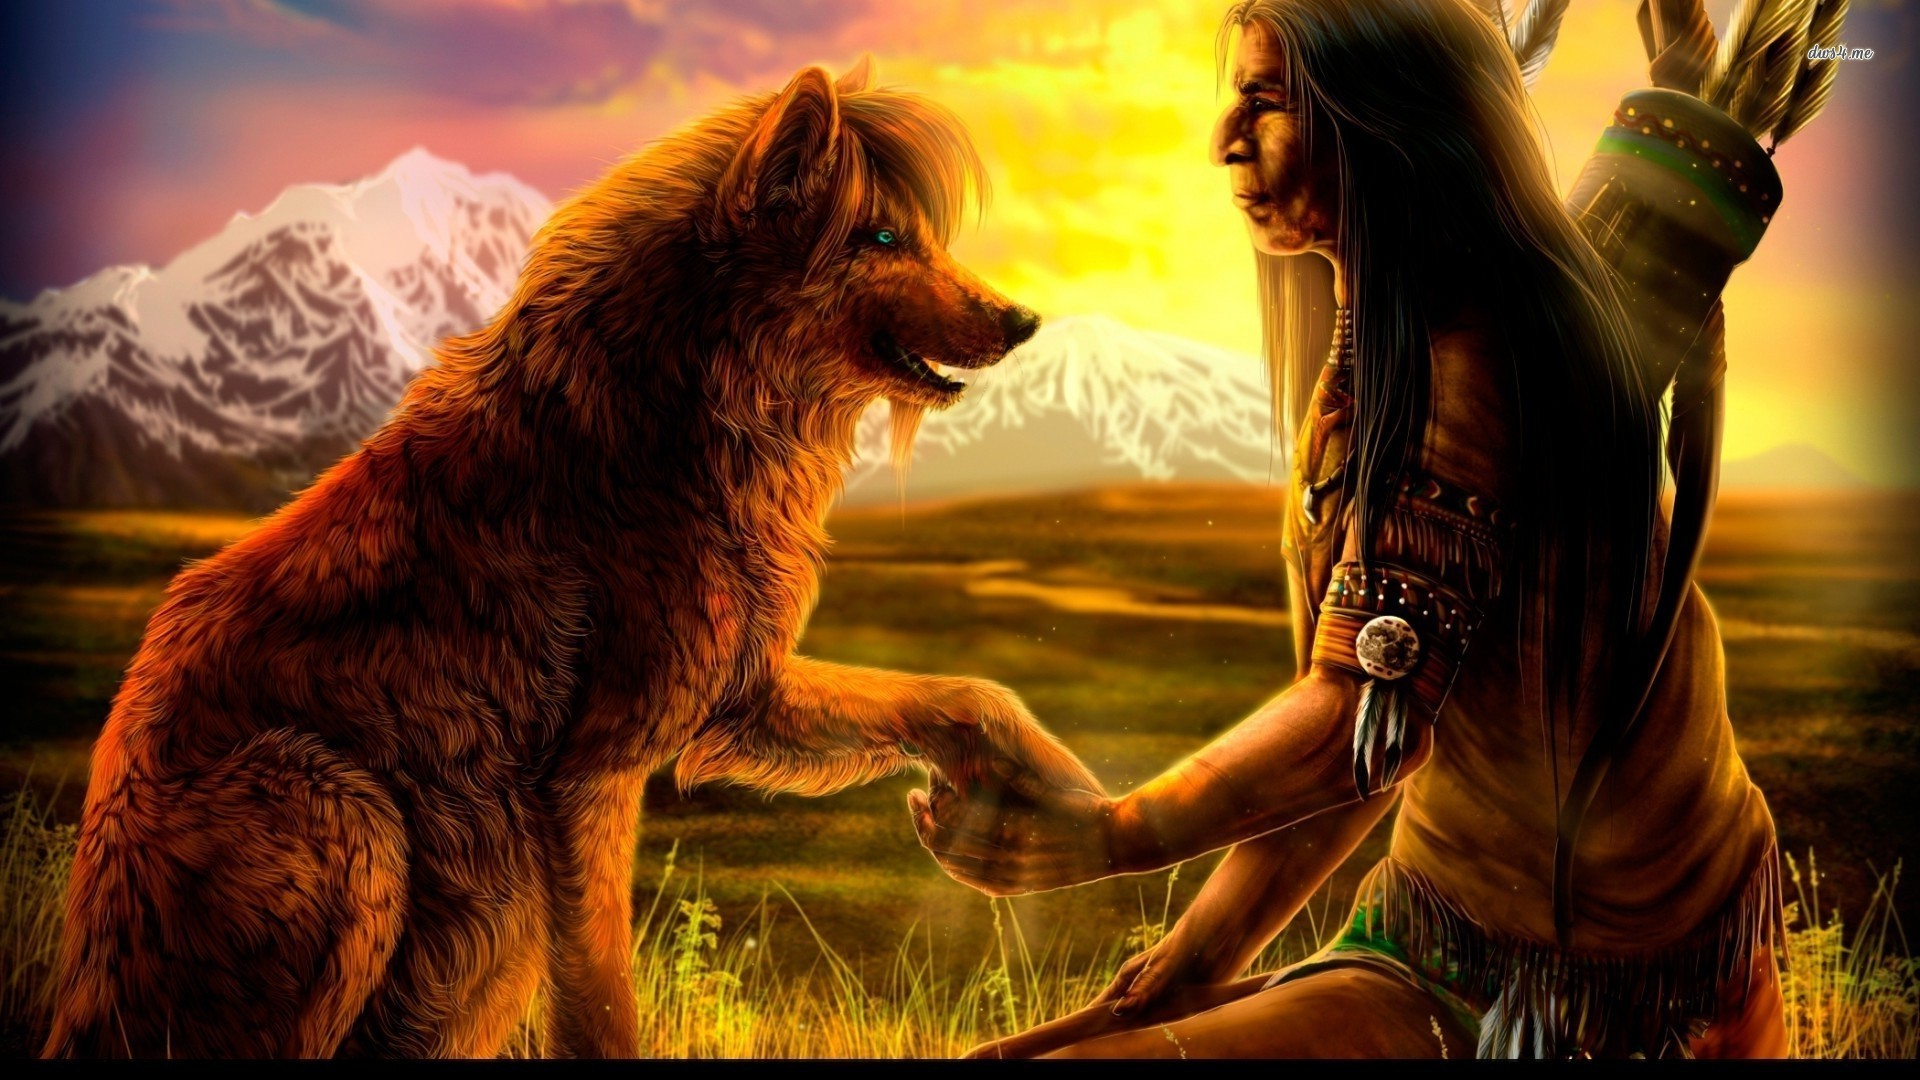 1920x1080 Native Americans | Native American with a wolf wallpaper 1280x800 Native  American with a .